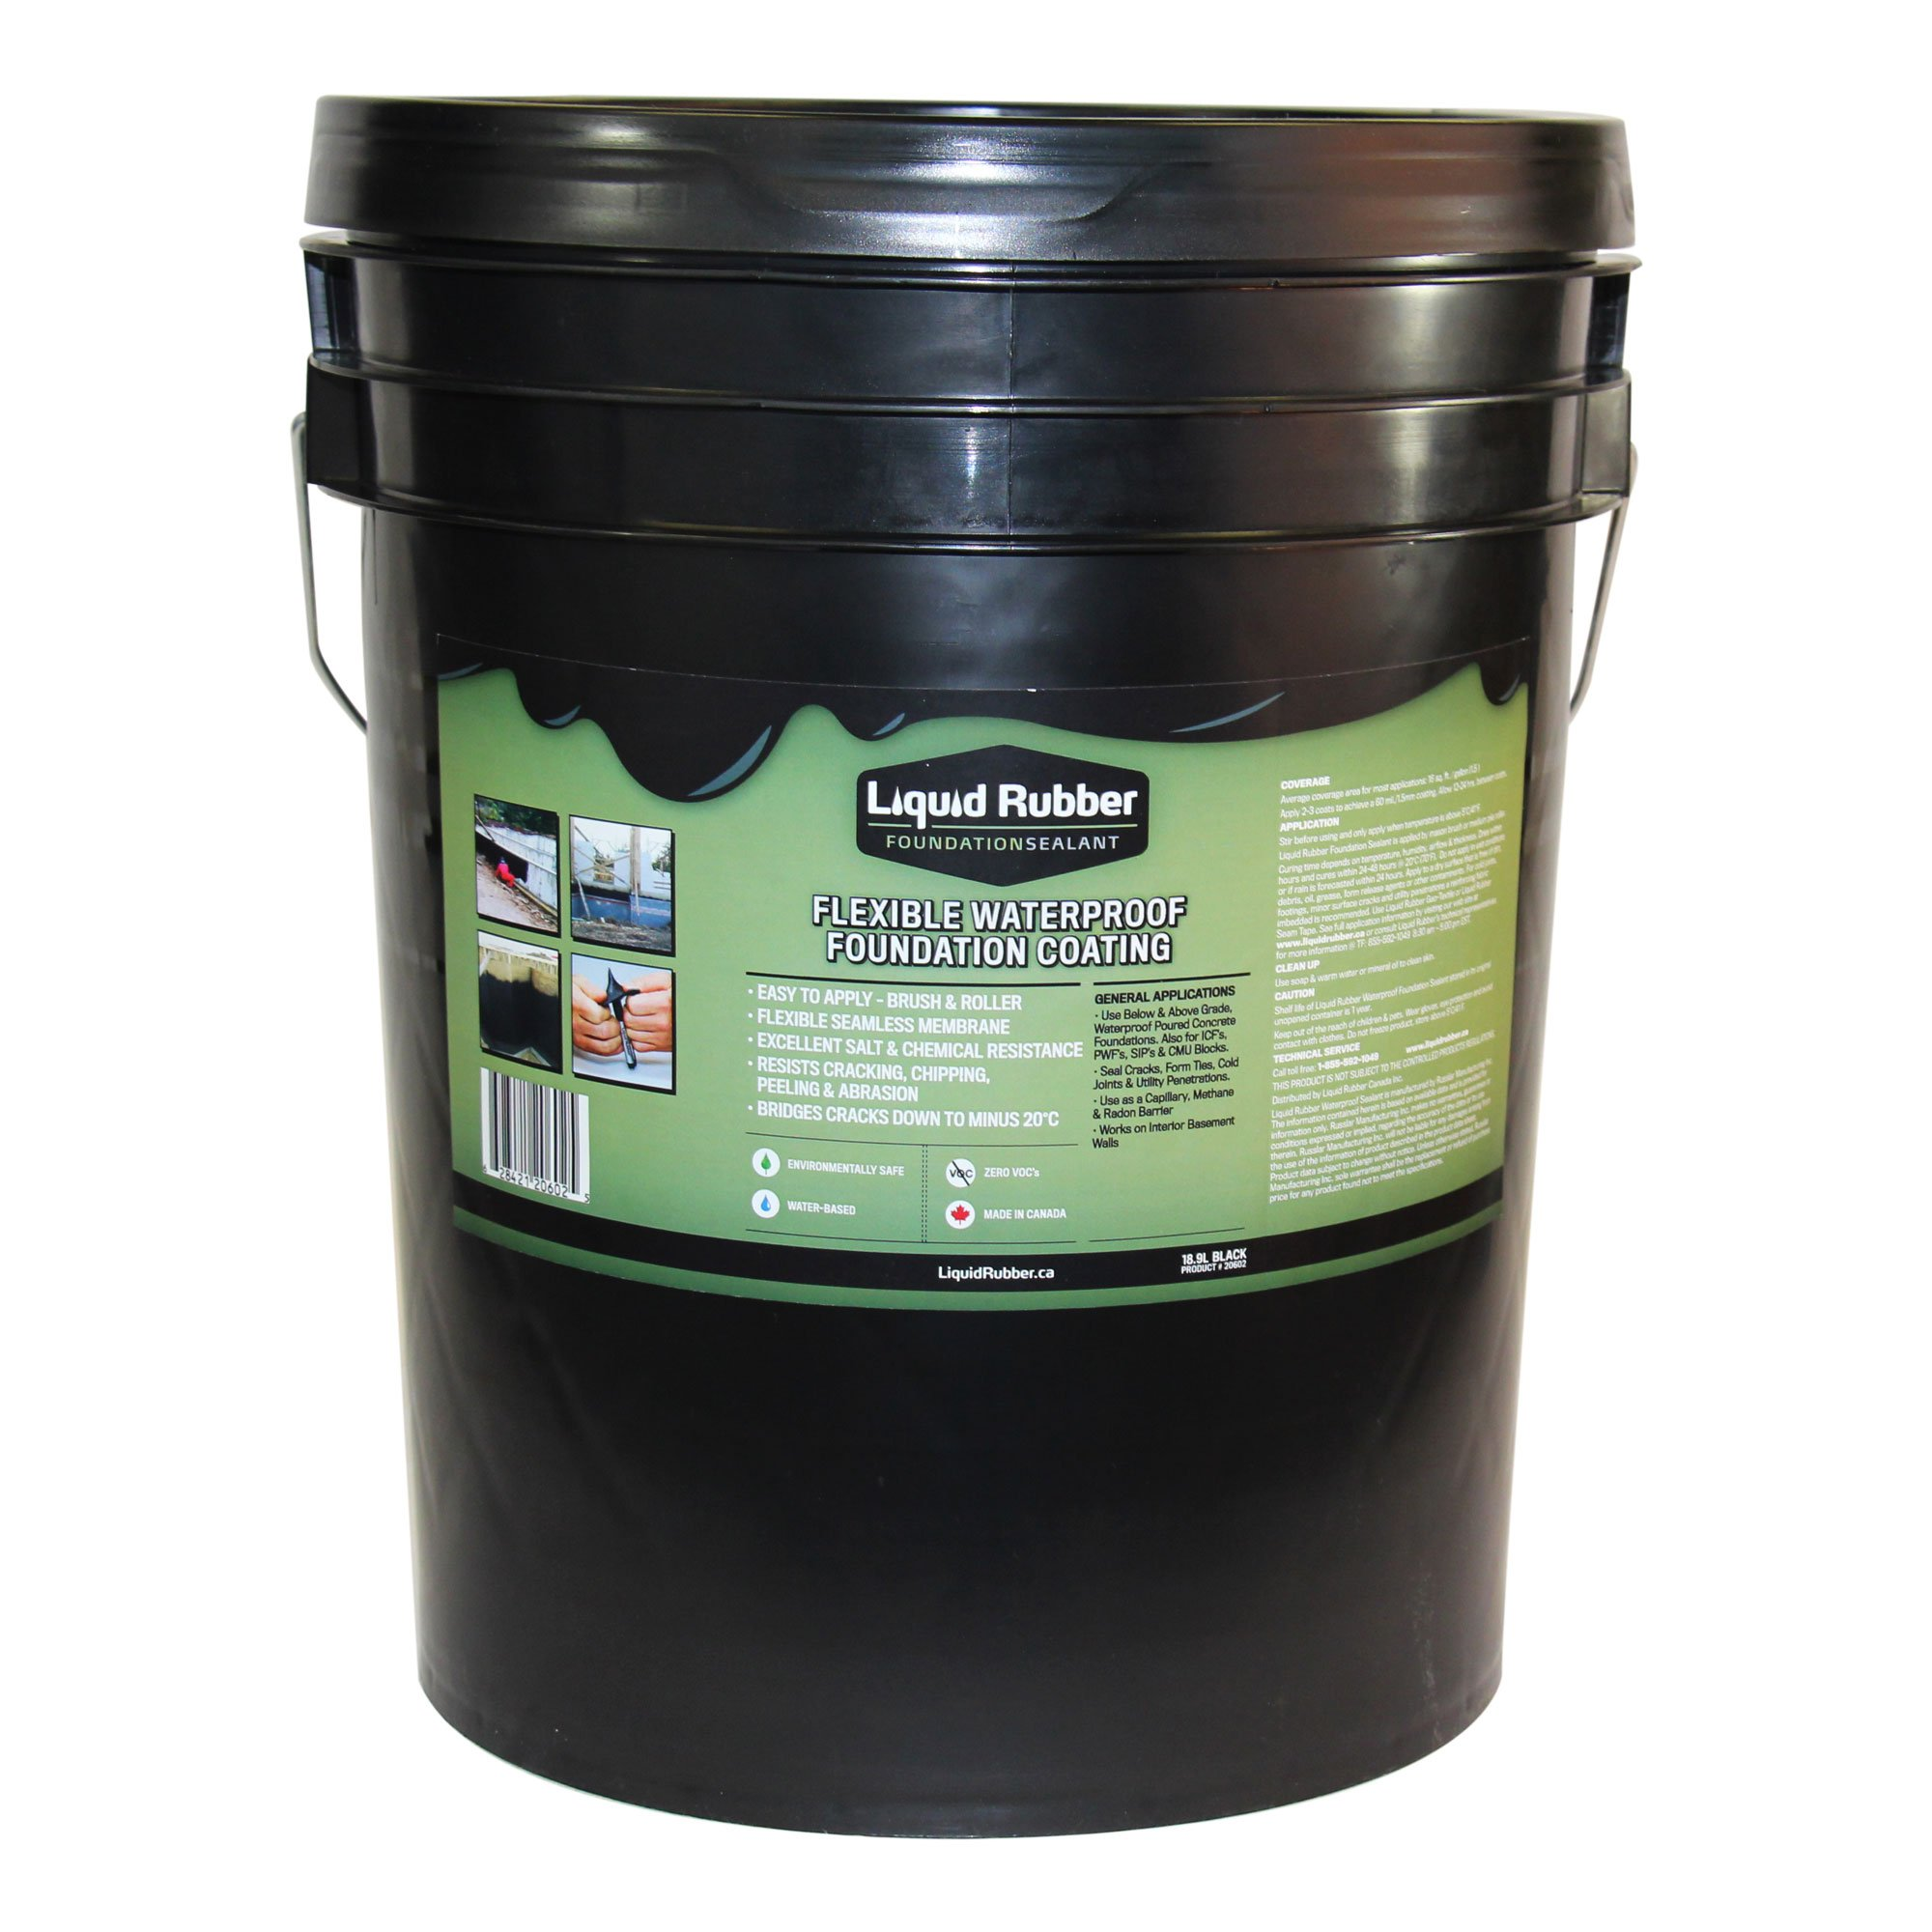 Liquid Rubber Foundation Sealant/Basement Coating - 5 Gallon - Black - Environmentally Friendly - Water Based - No Solvents, VOC's or Harmful Odors - No Mixing - Fix Leaks and Cracks - TOP SELLER